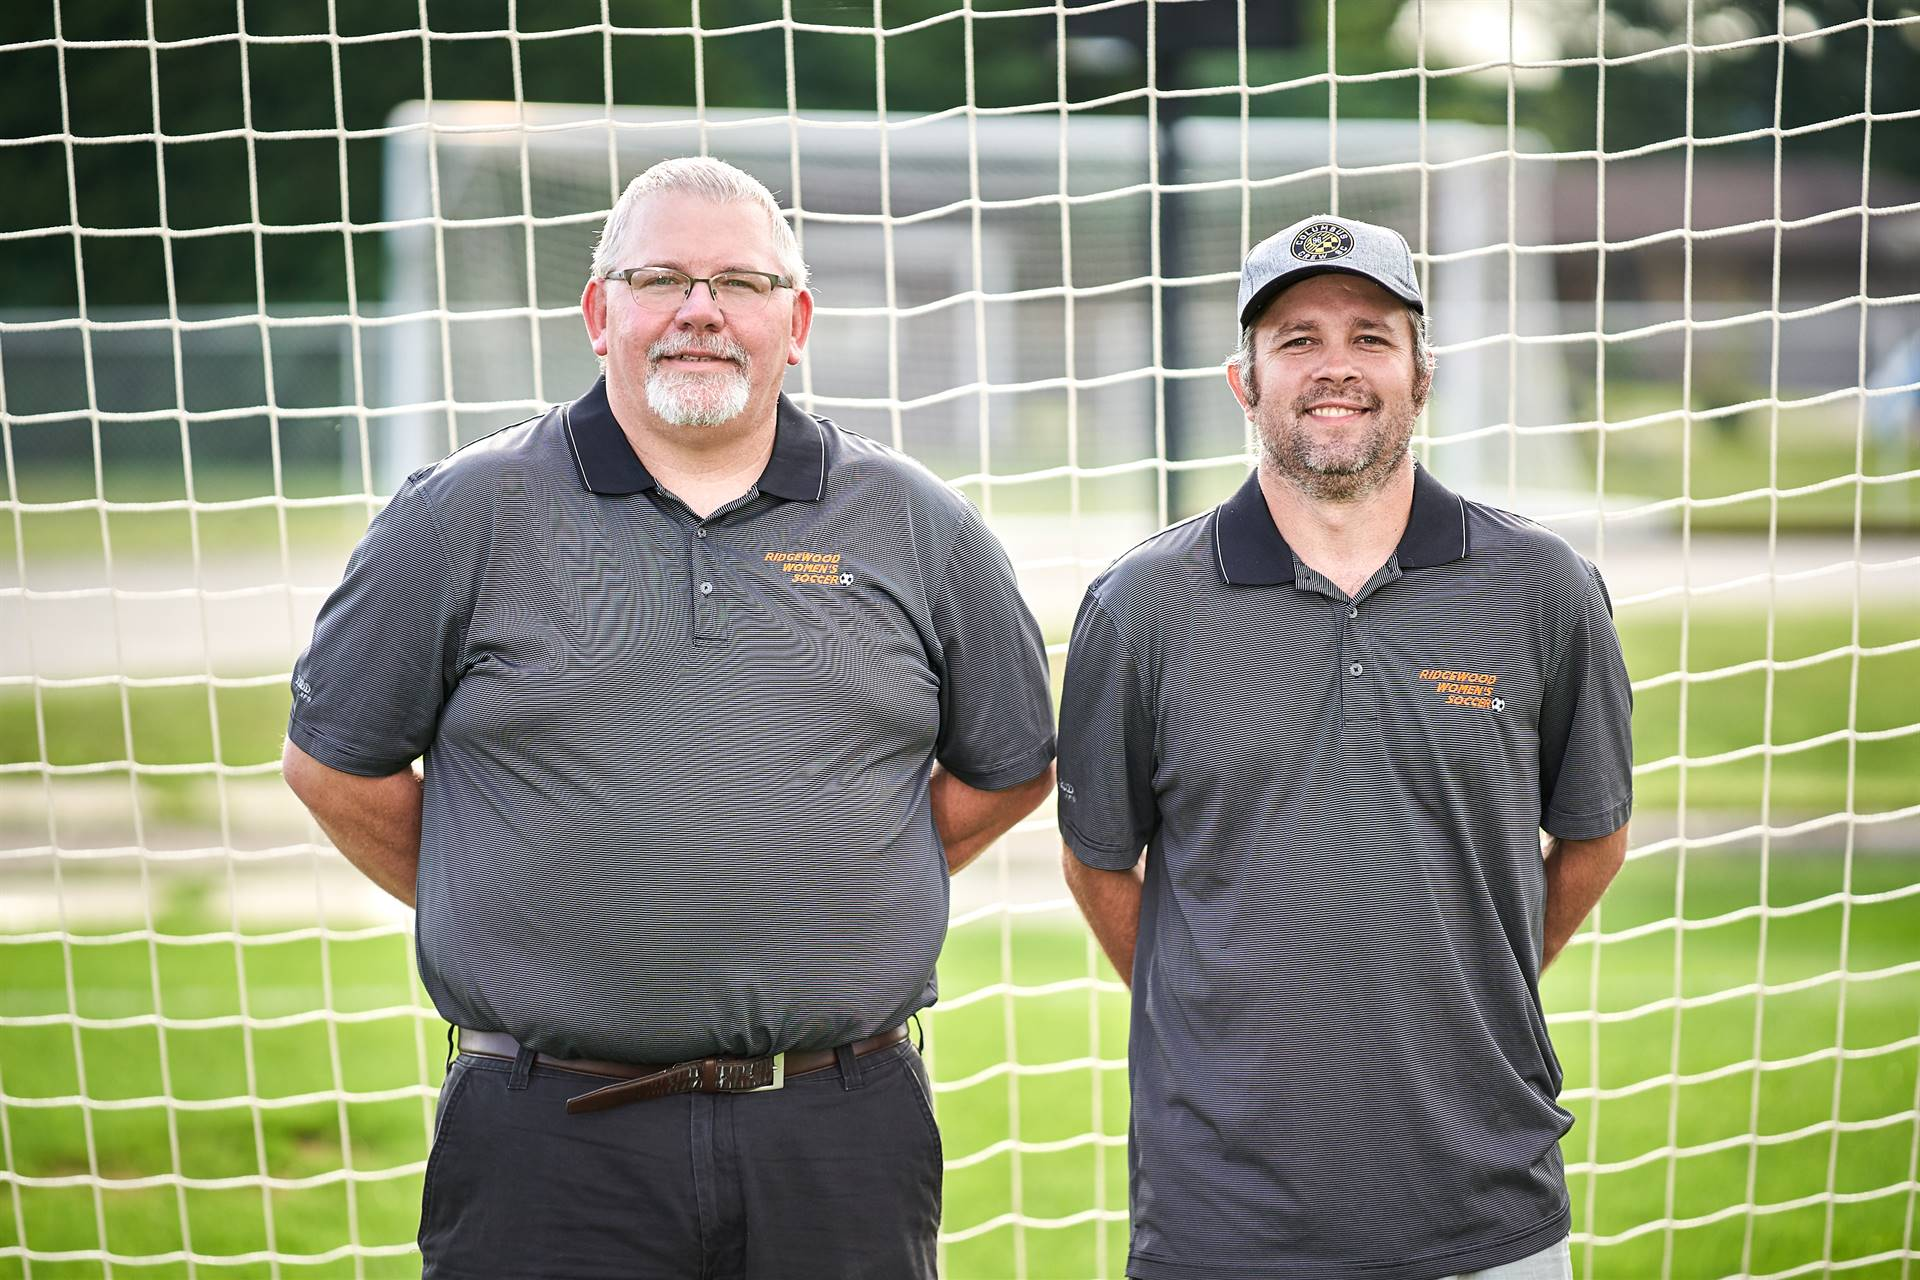 Soccer - Coaches Jeff Eveland and Tim Tubbs